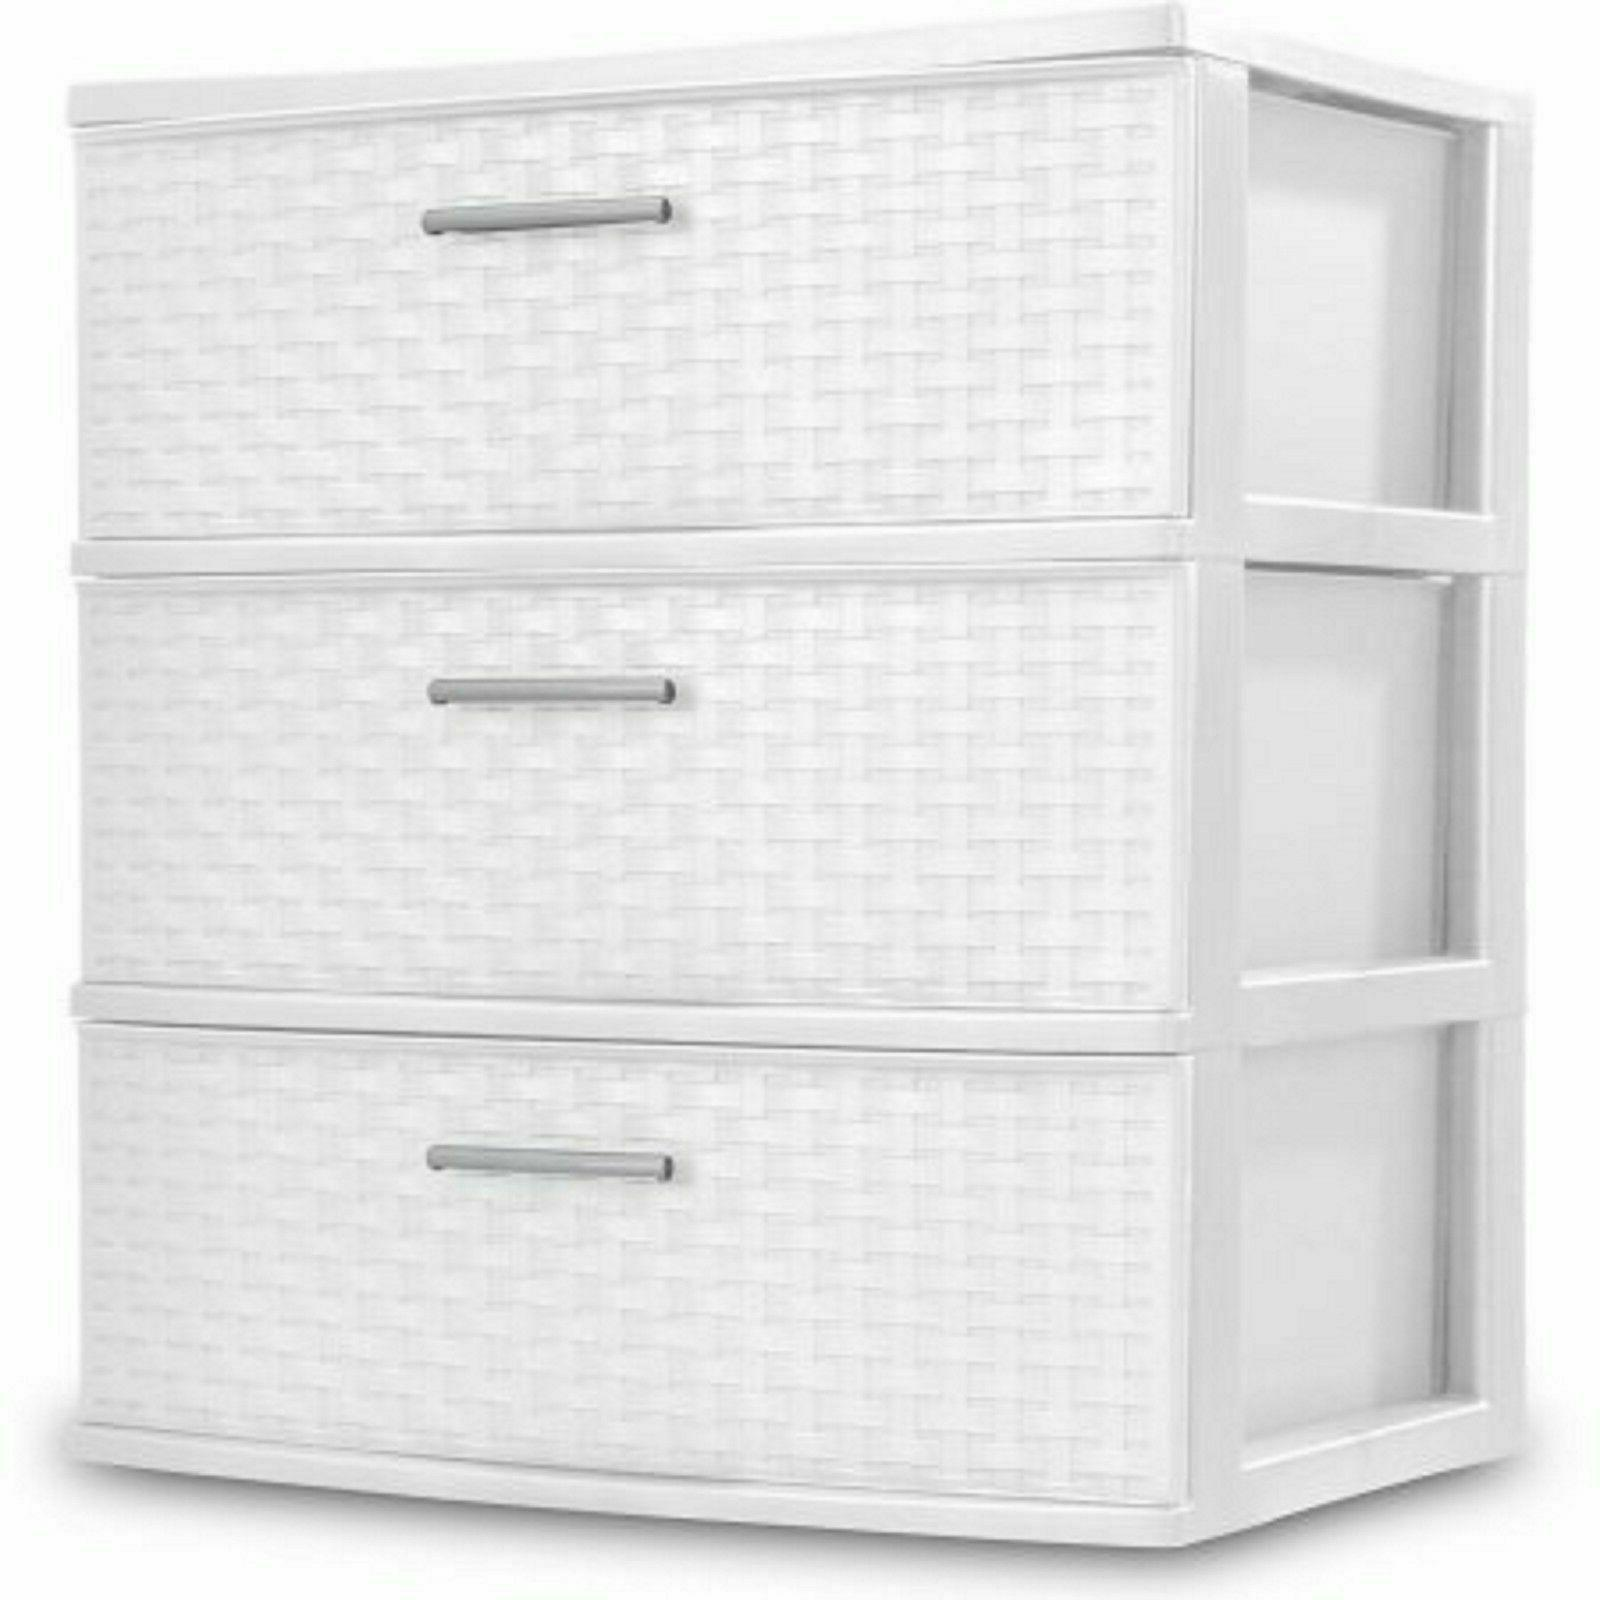 Clothes Cabinet 3 Drawer Box